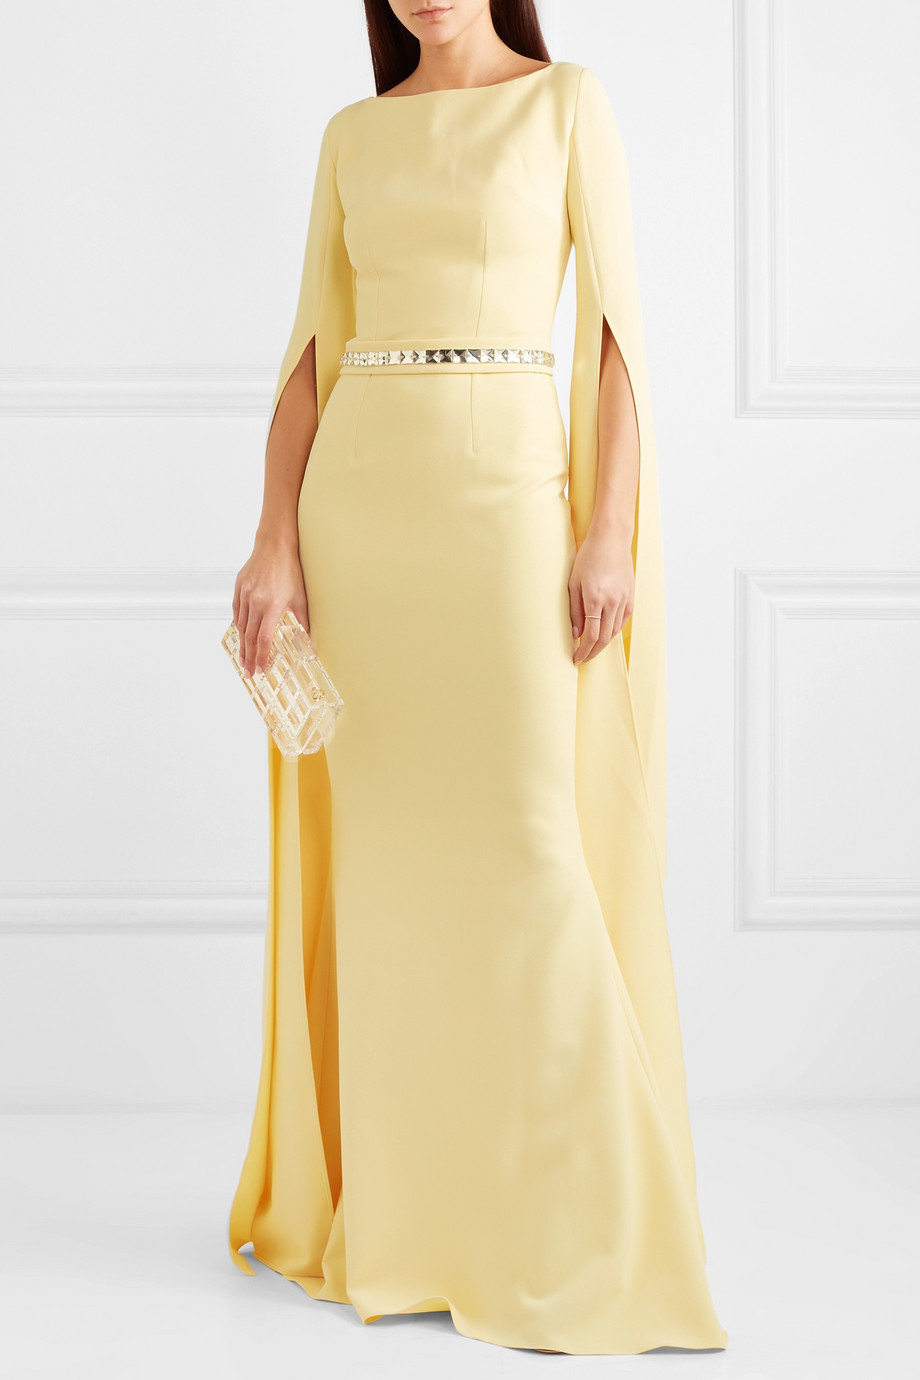 Safiyaa Crystal-embellished stretch-crepe gown